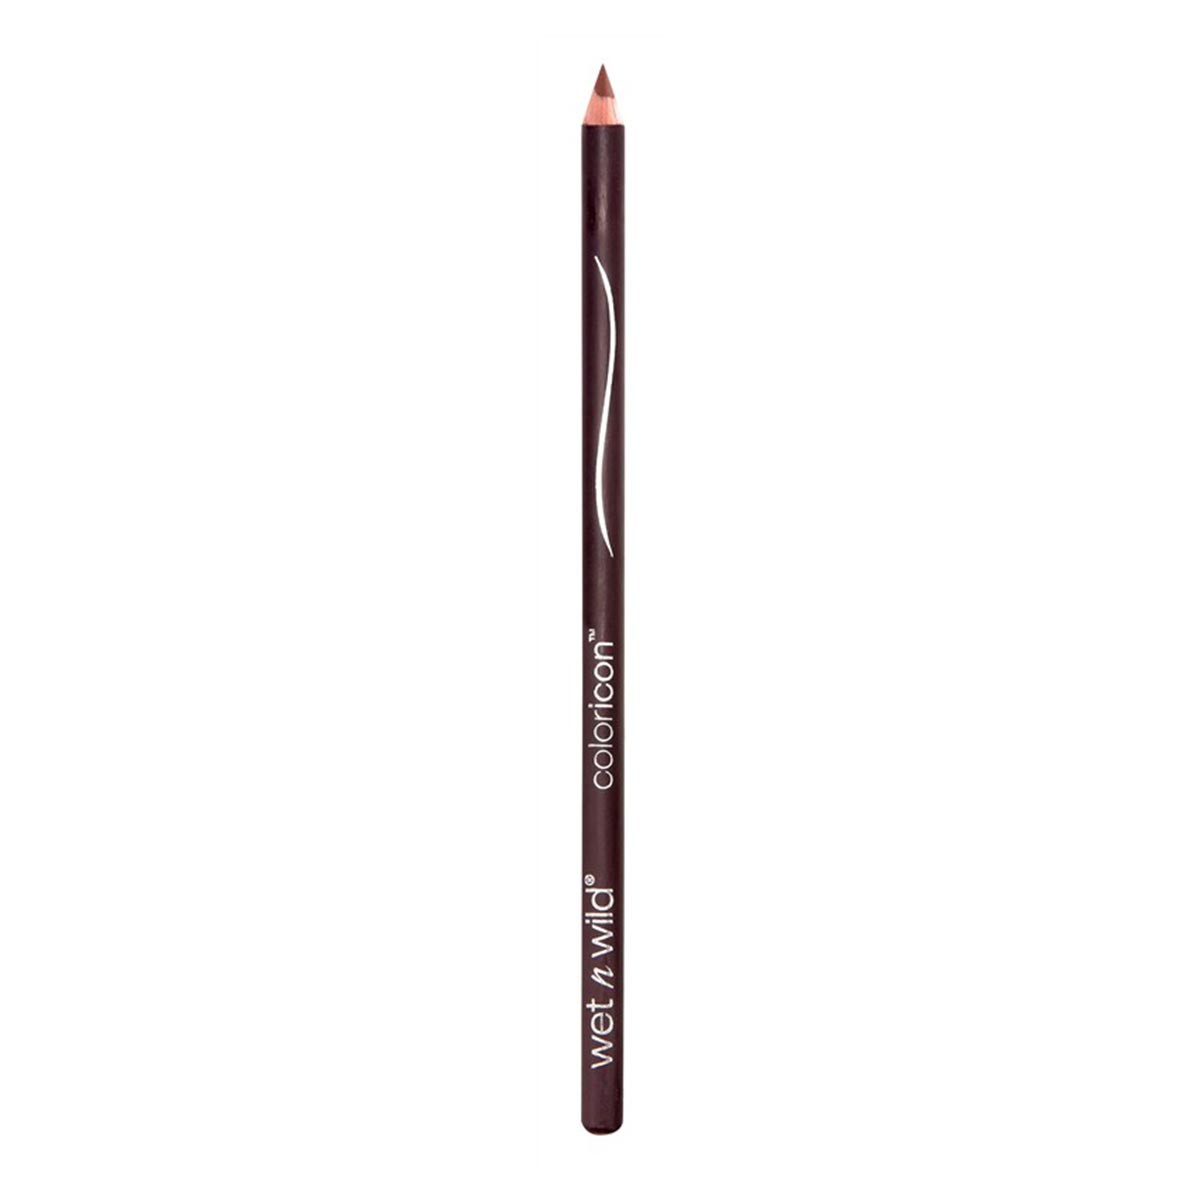 Wet n wild Coloricon Lipliner Chestnut